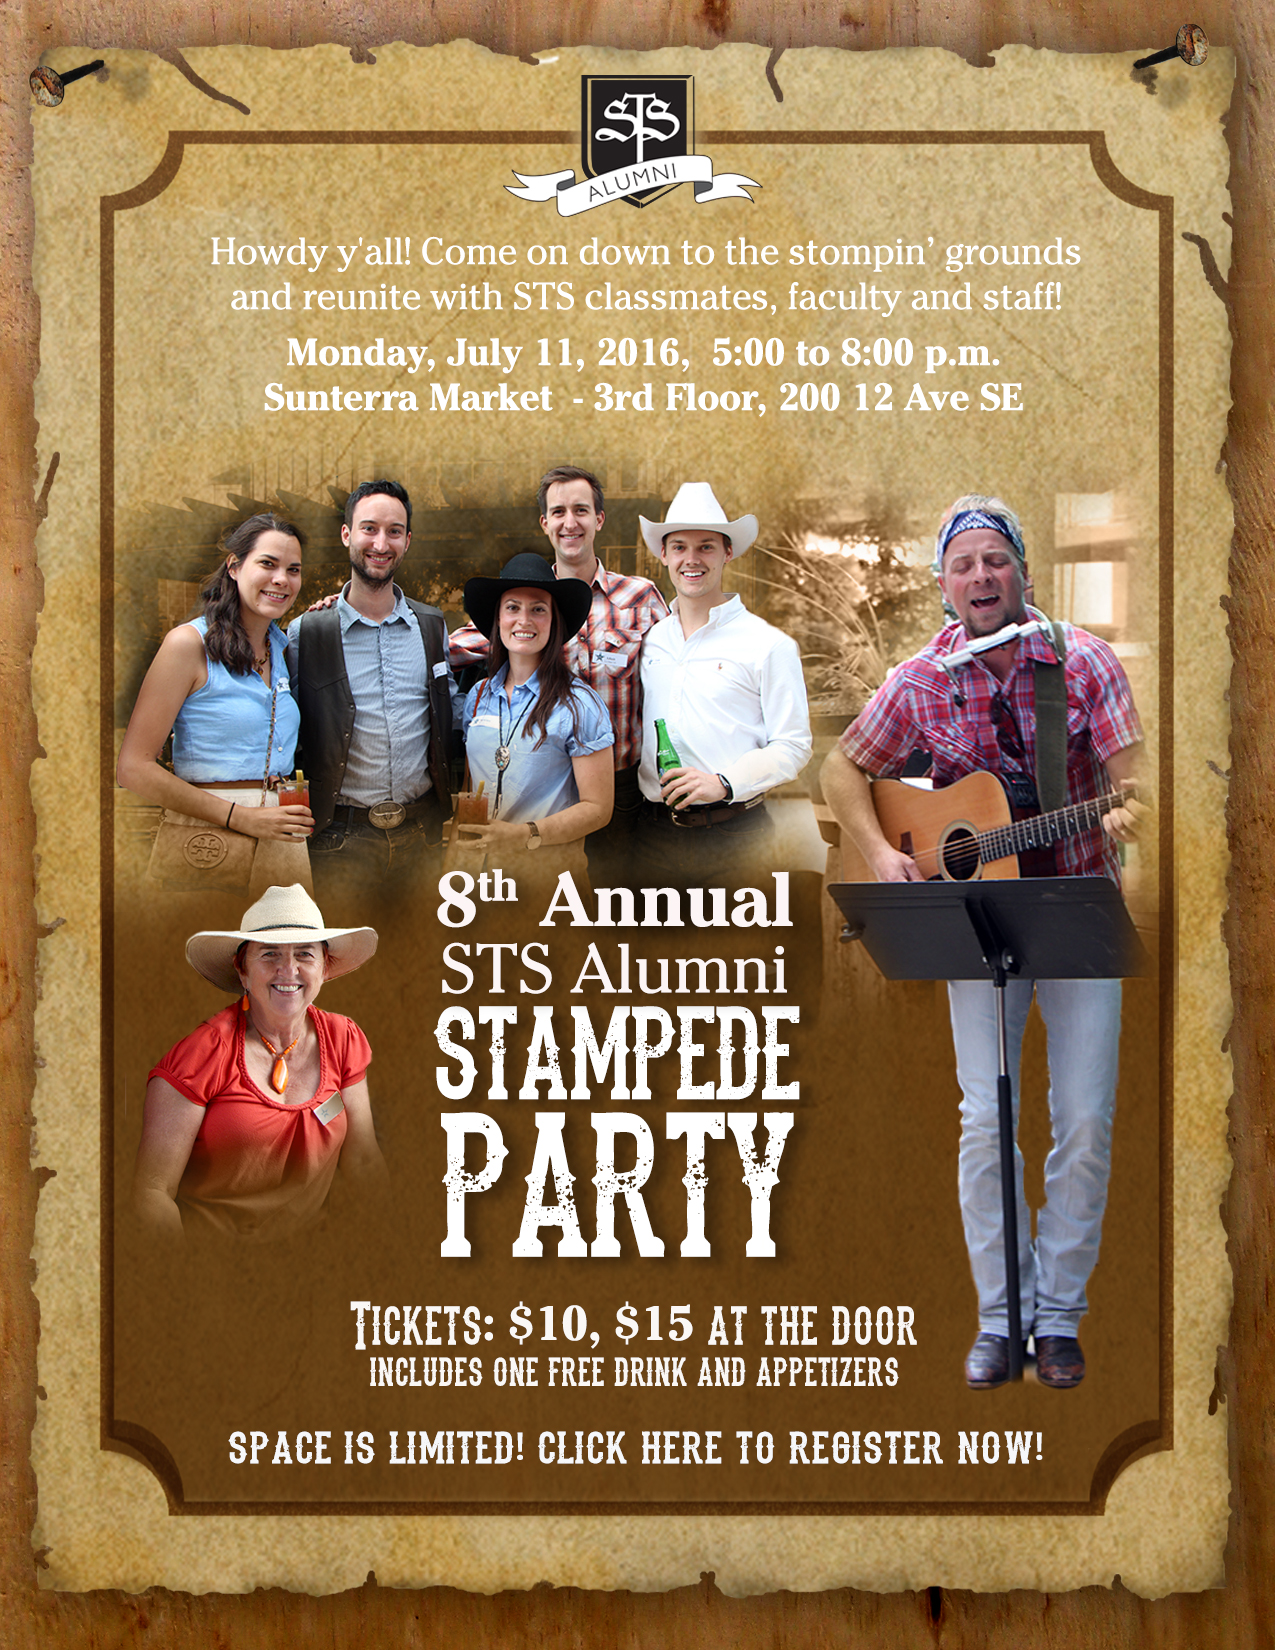 STS Alumni Stampede Party 2016